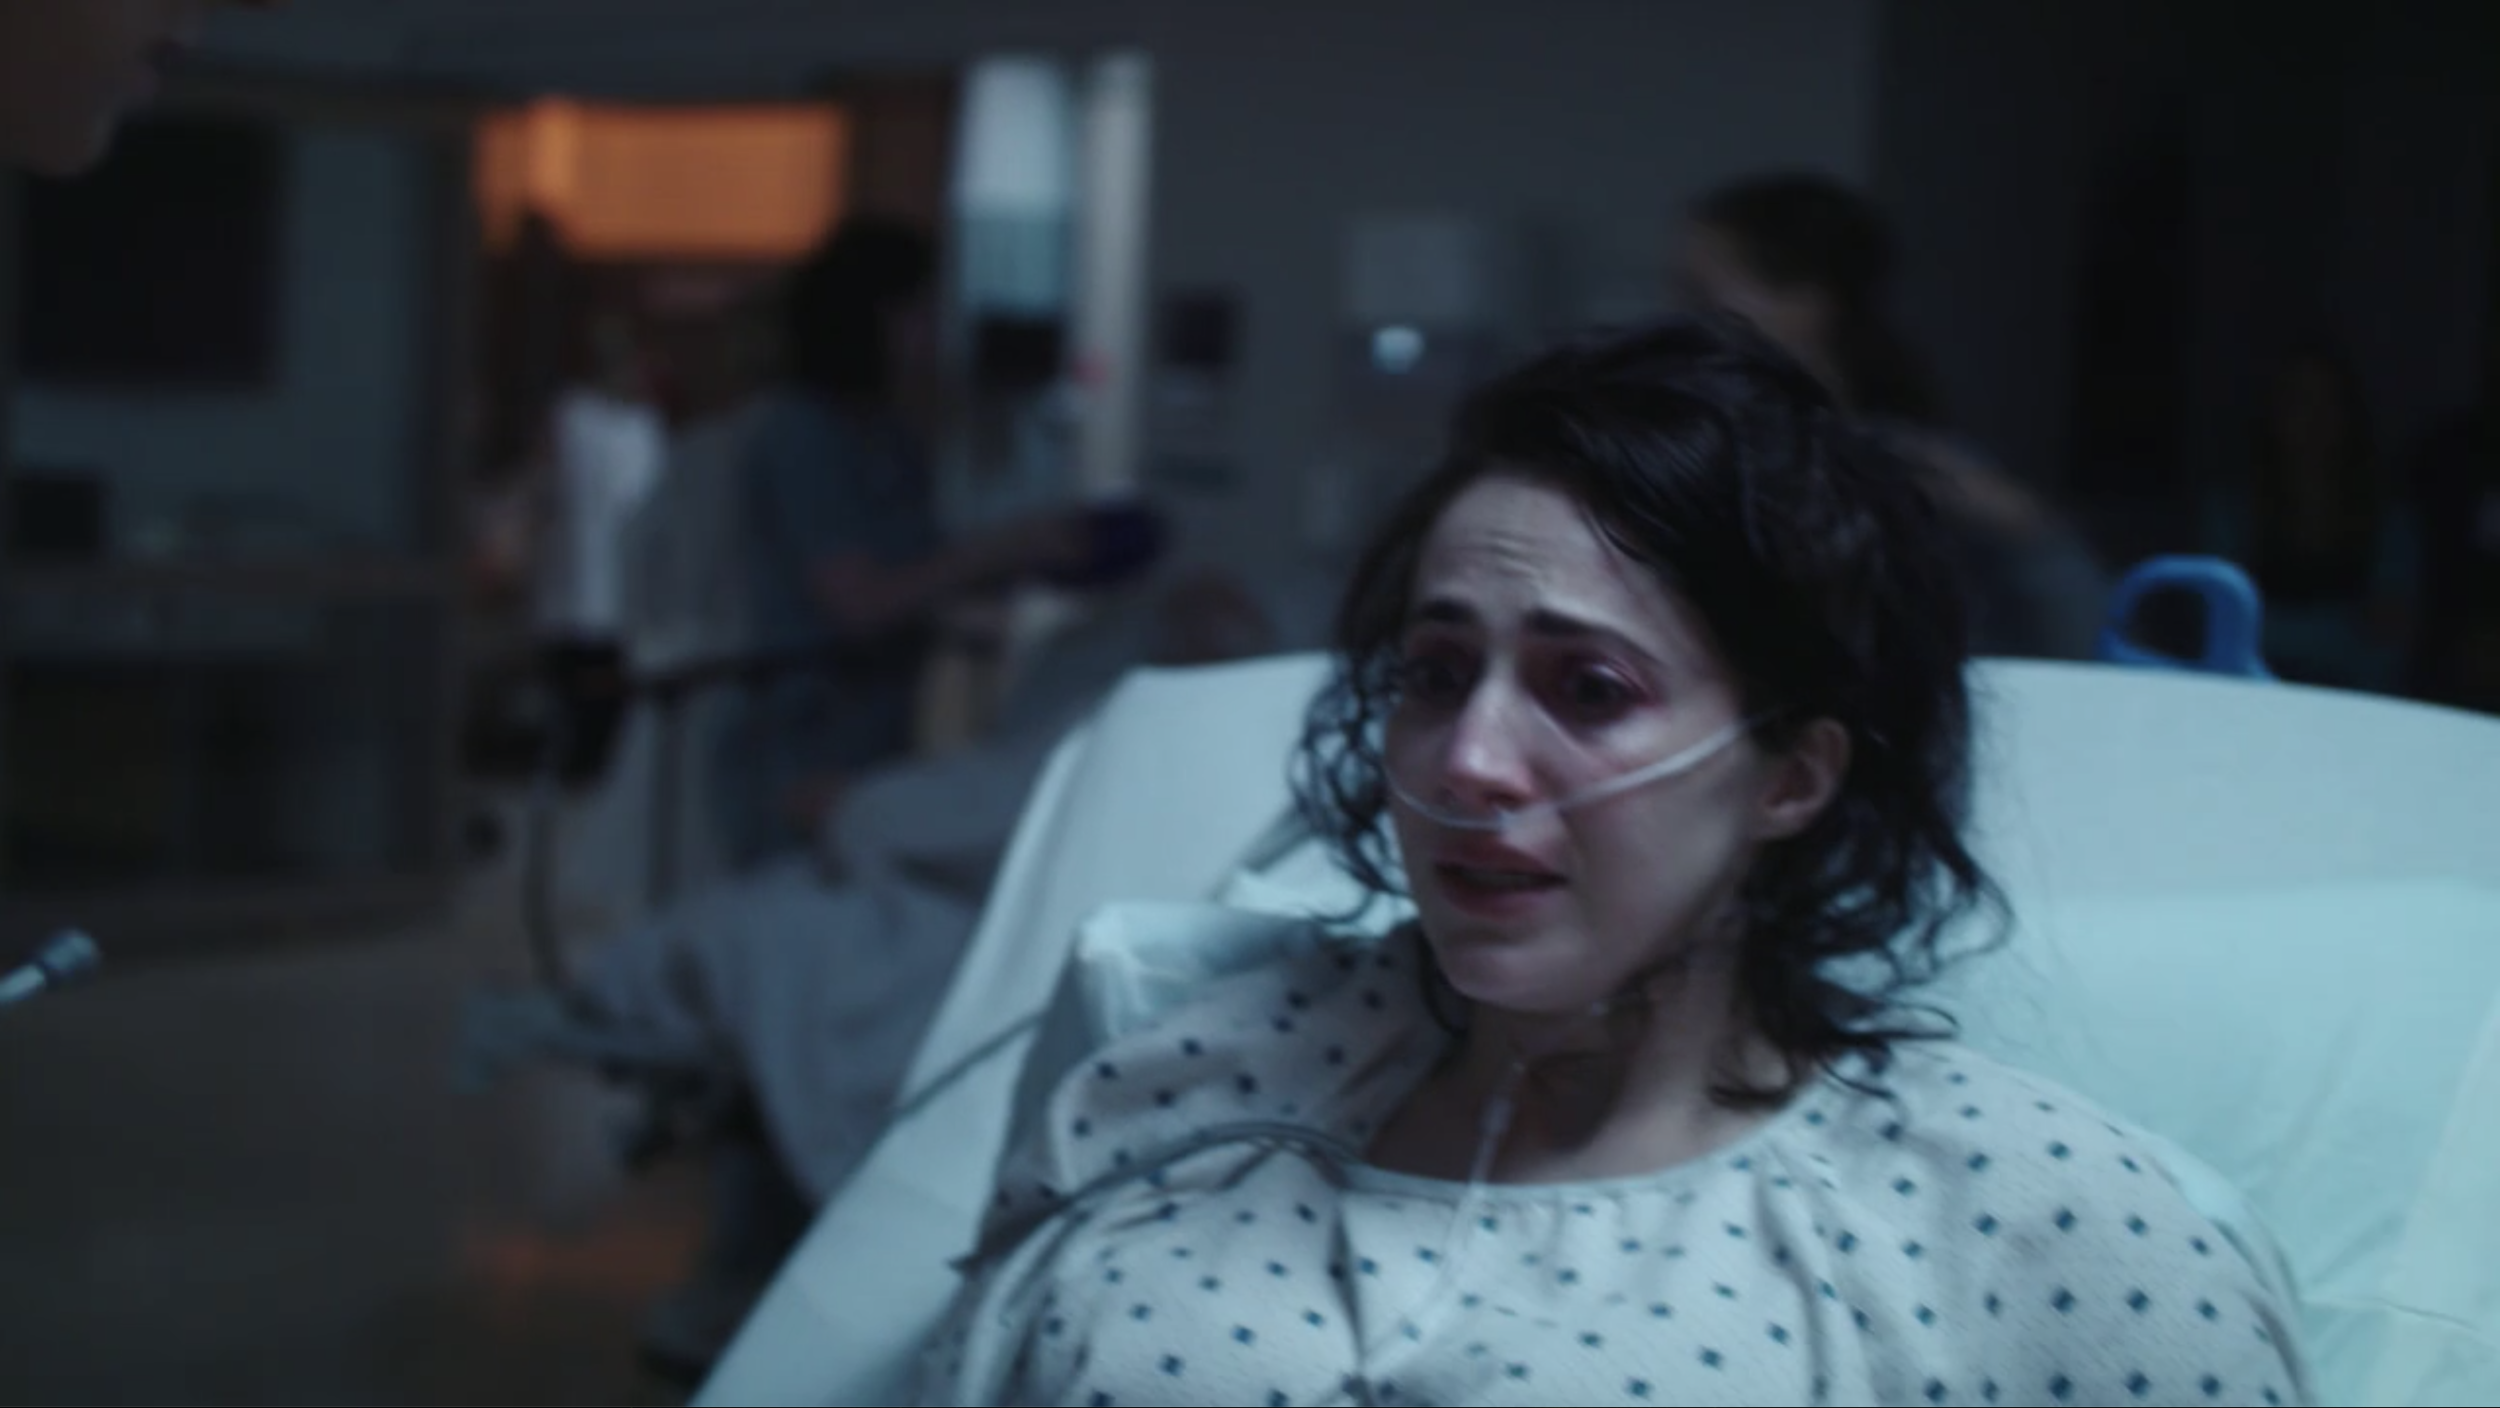 Adrienne_Whitney_Papp_The_ Resident_AdrienneWhitneyPapp_TheResident_S2E1_5.png